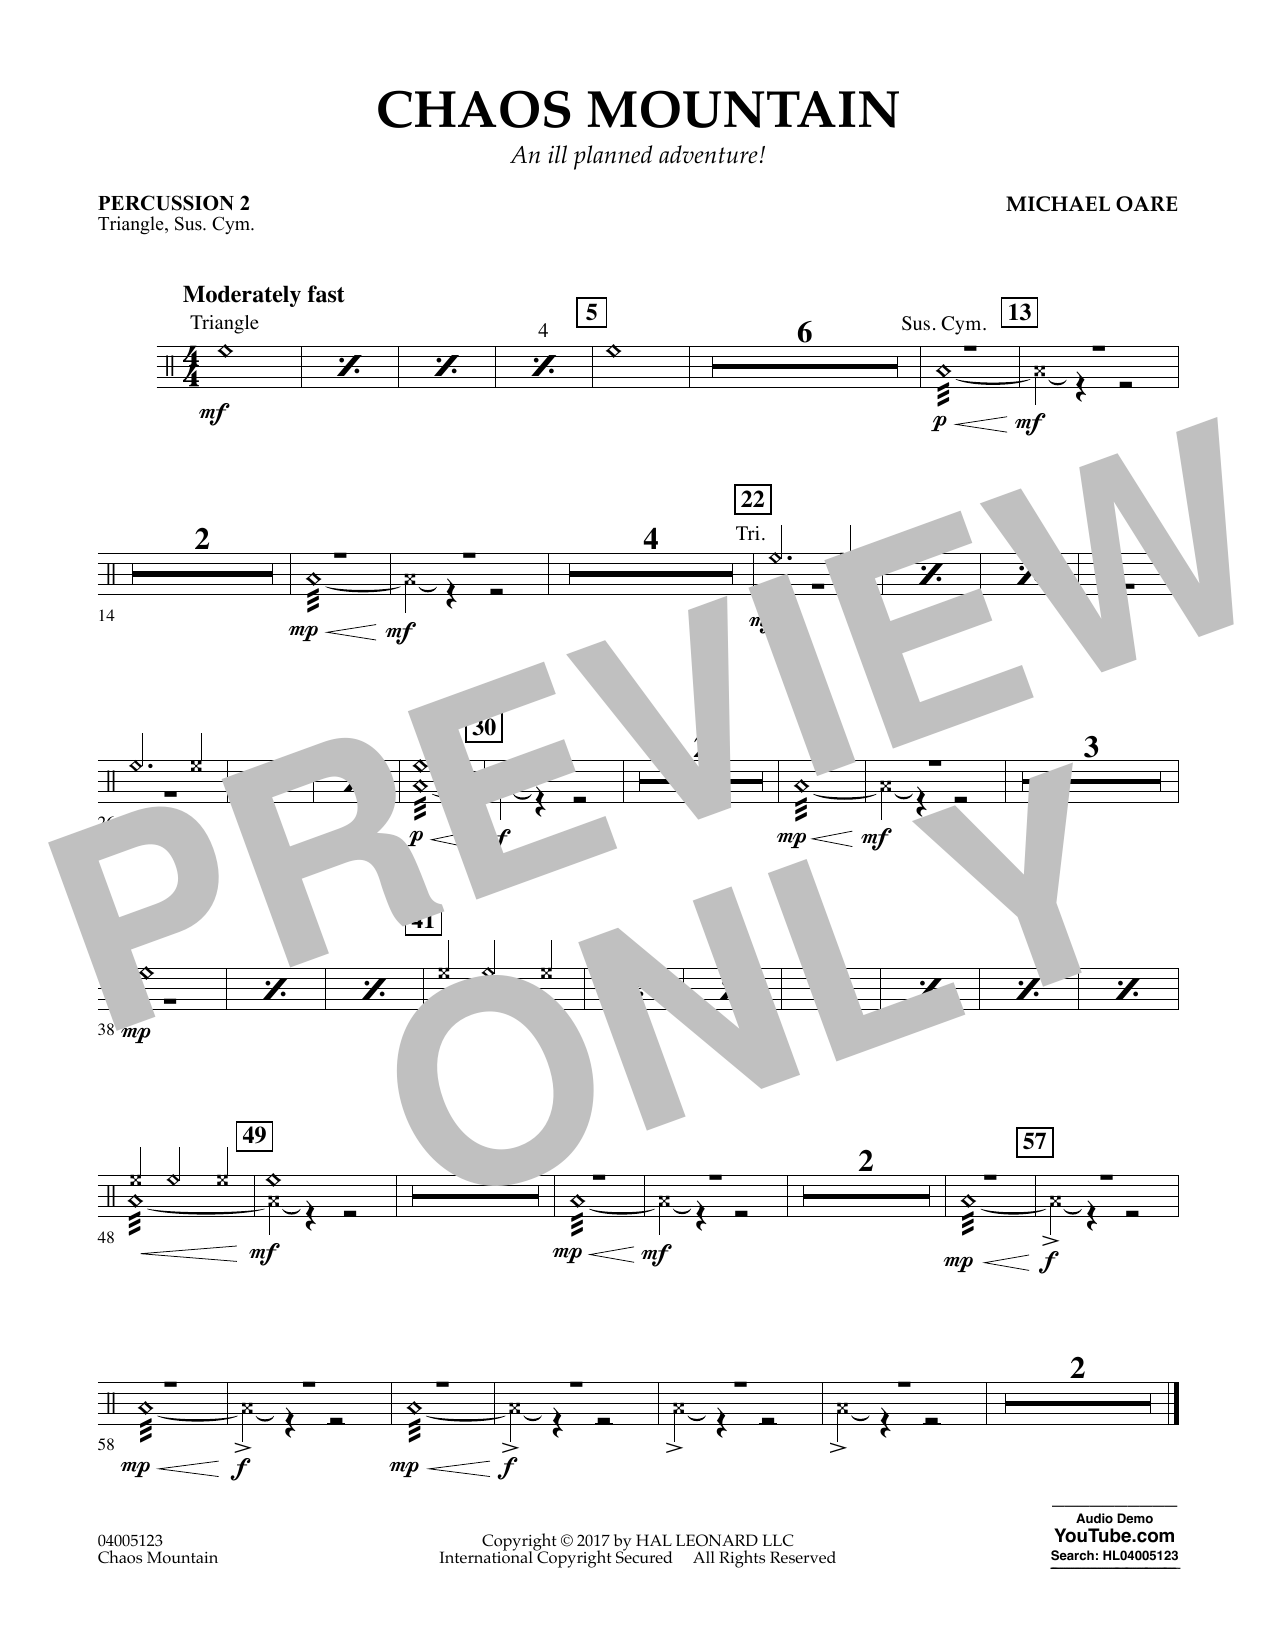 Michael Oare Chaos Mountain - Percussion 2 sheet music notes and chords. Download Printable PDF.